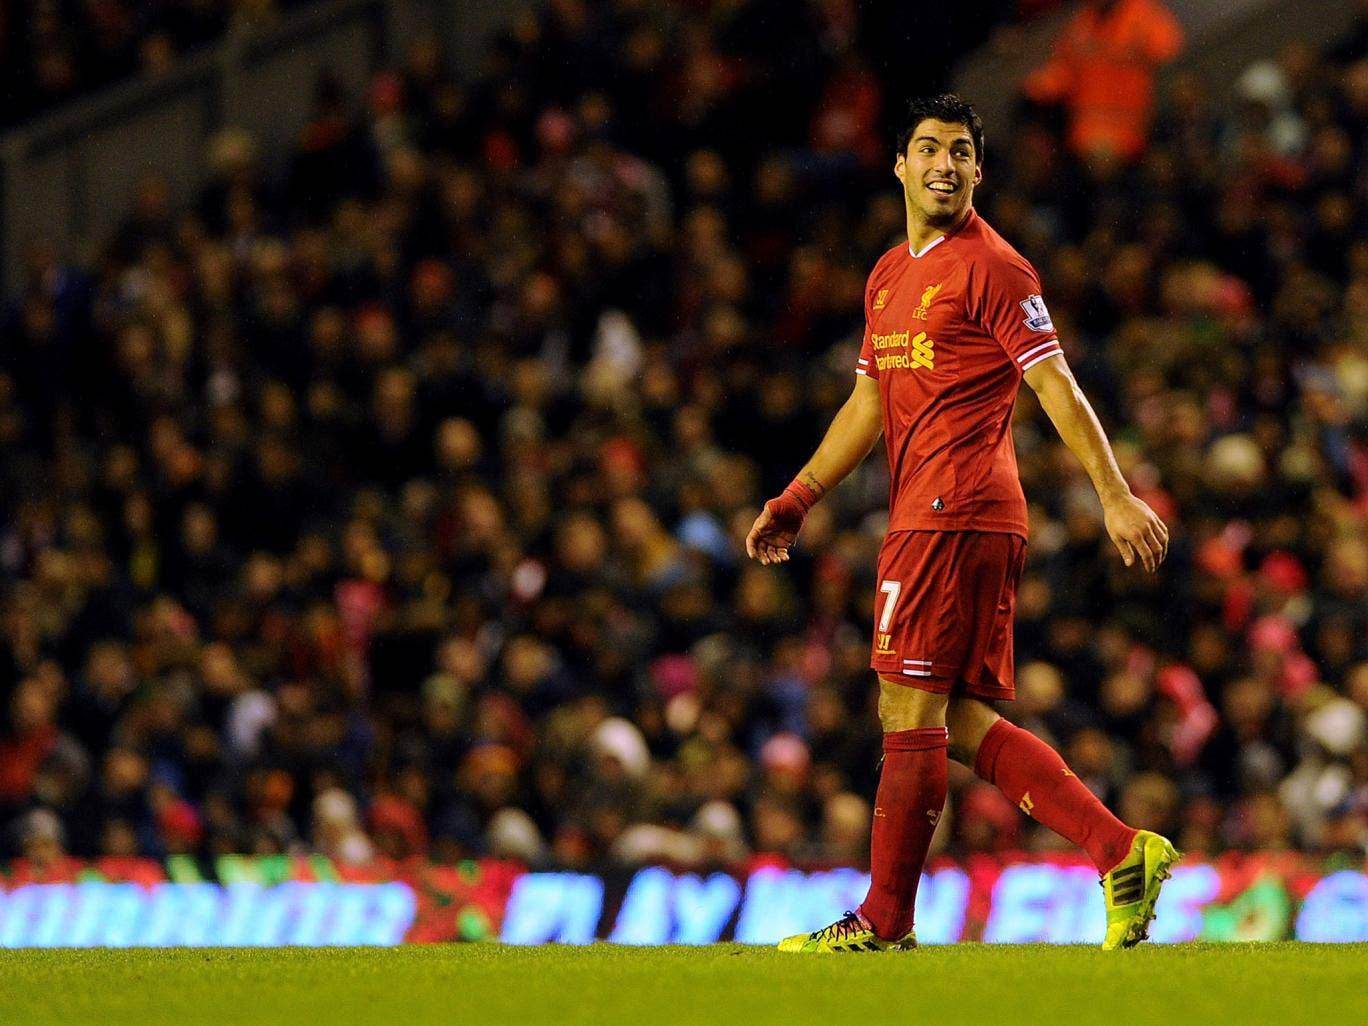 Liverpool striker Luis Suarez has been identified as the key threat by Oldham Athletic manager Lee Johnson